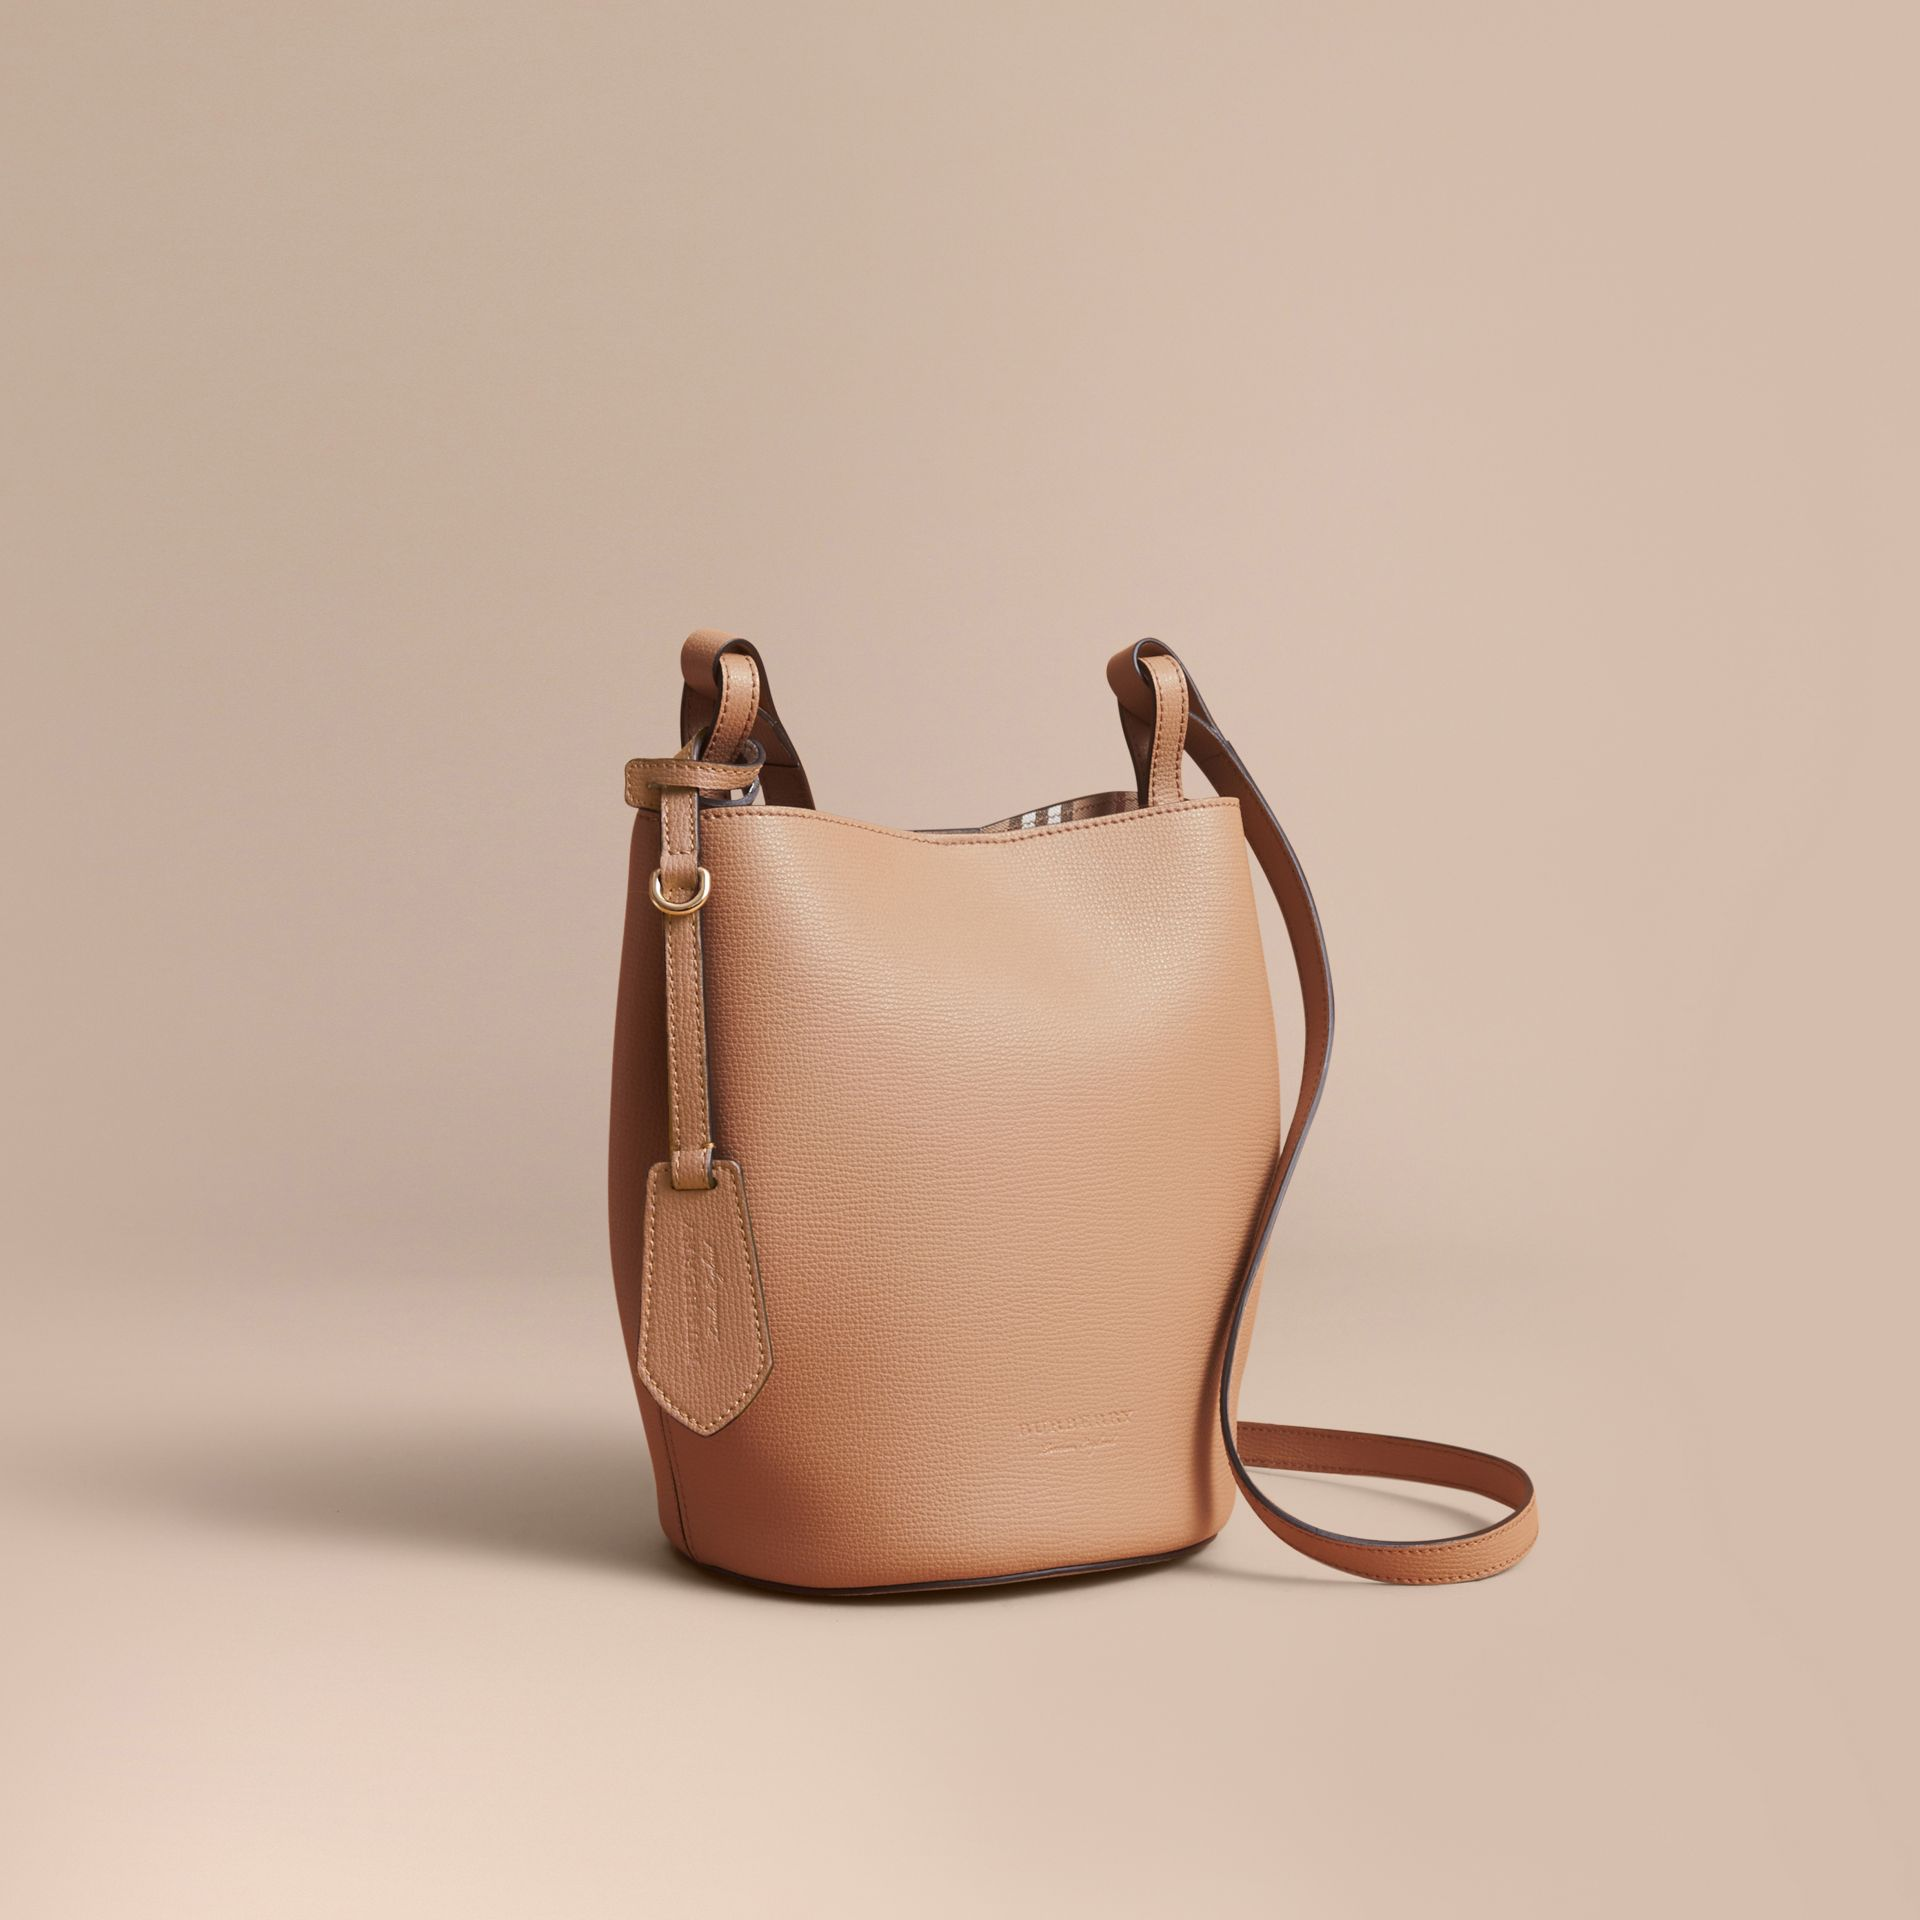 Leather and Haymarket Check Crossbody Bucket Bag in Mid Camel - Women | Burberry United Kingdom - gallery image 1